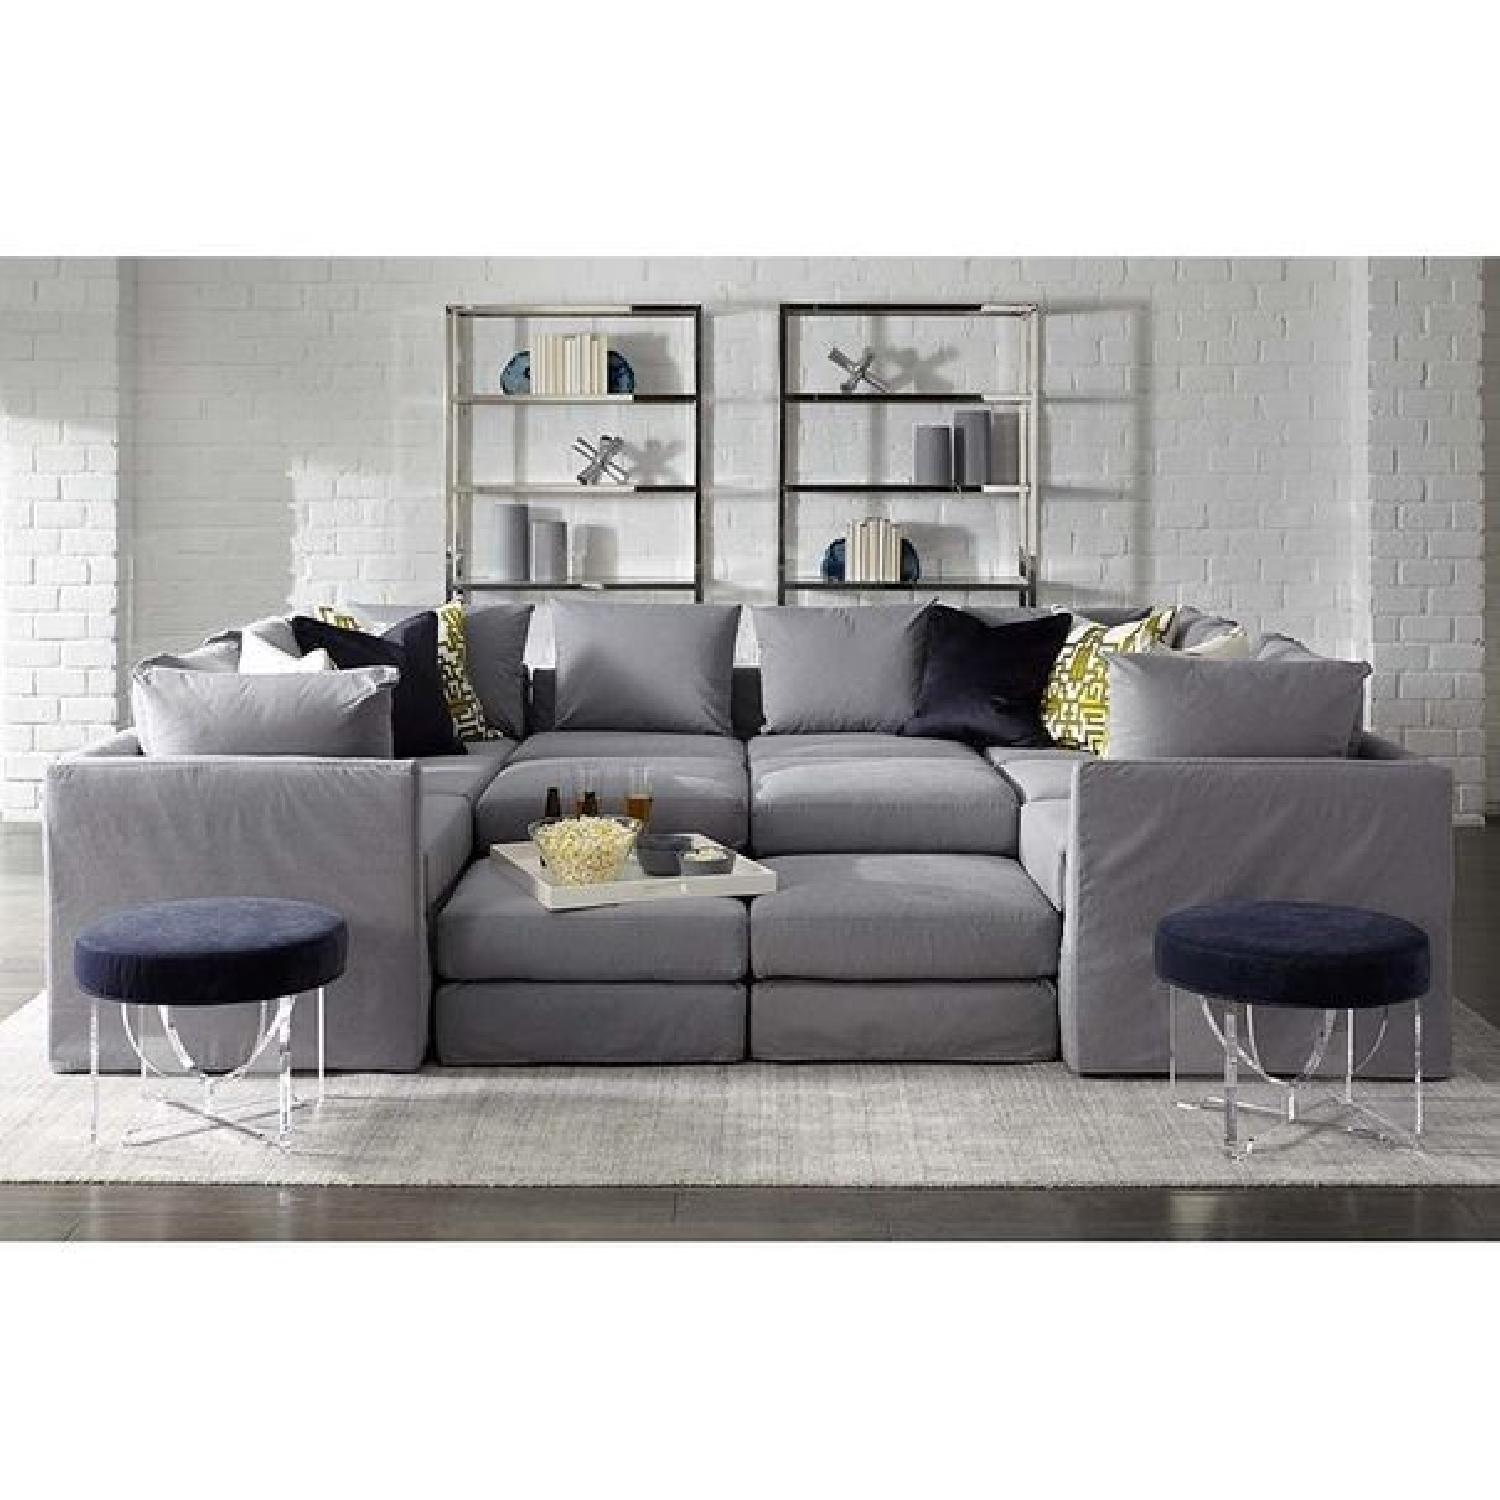 Mitchell Gold + Bob Williams Dresher Rug in Silver-1